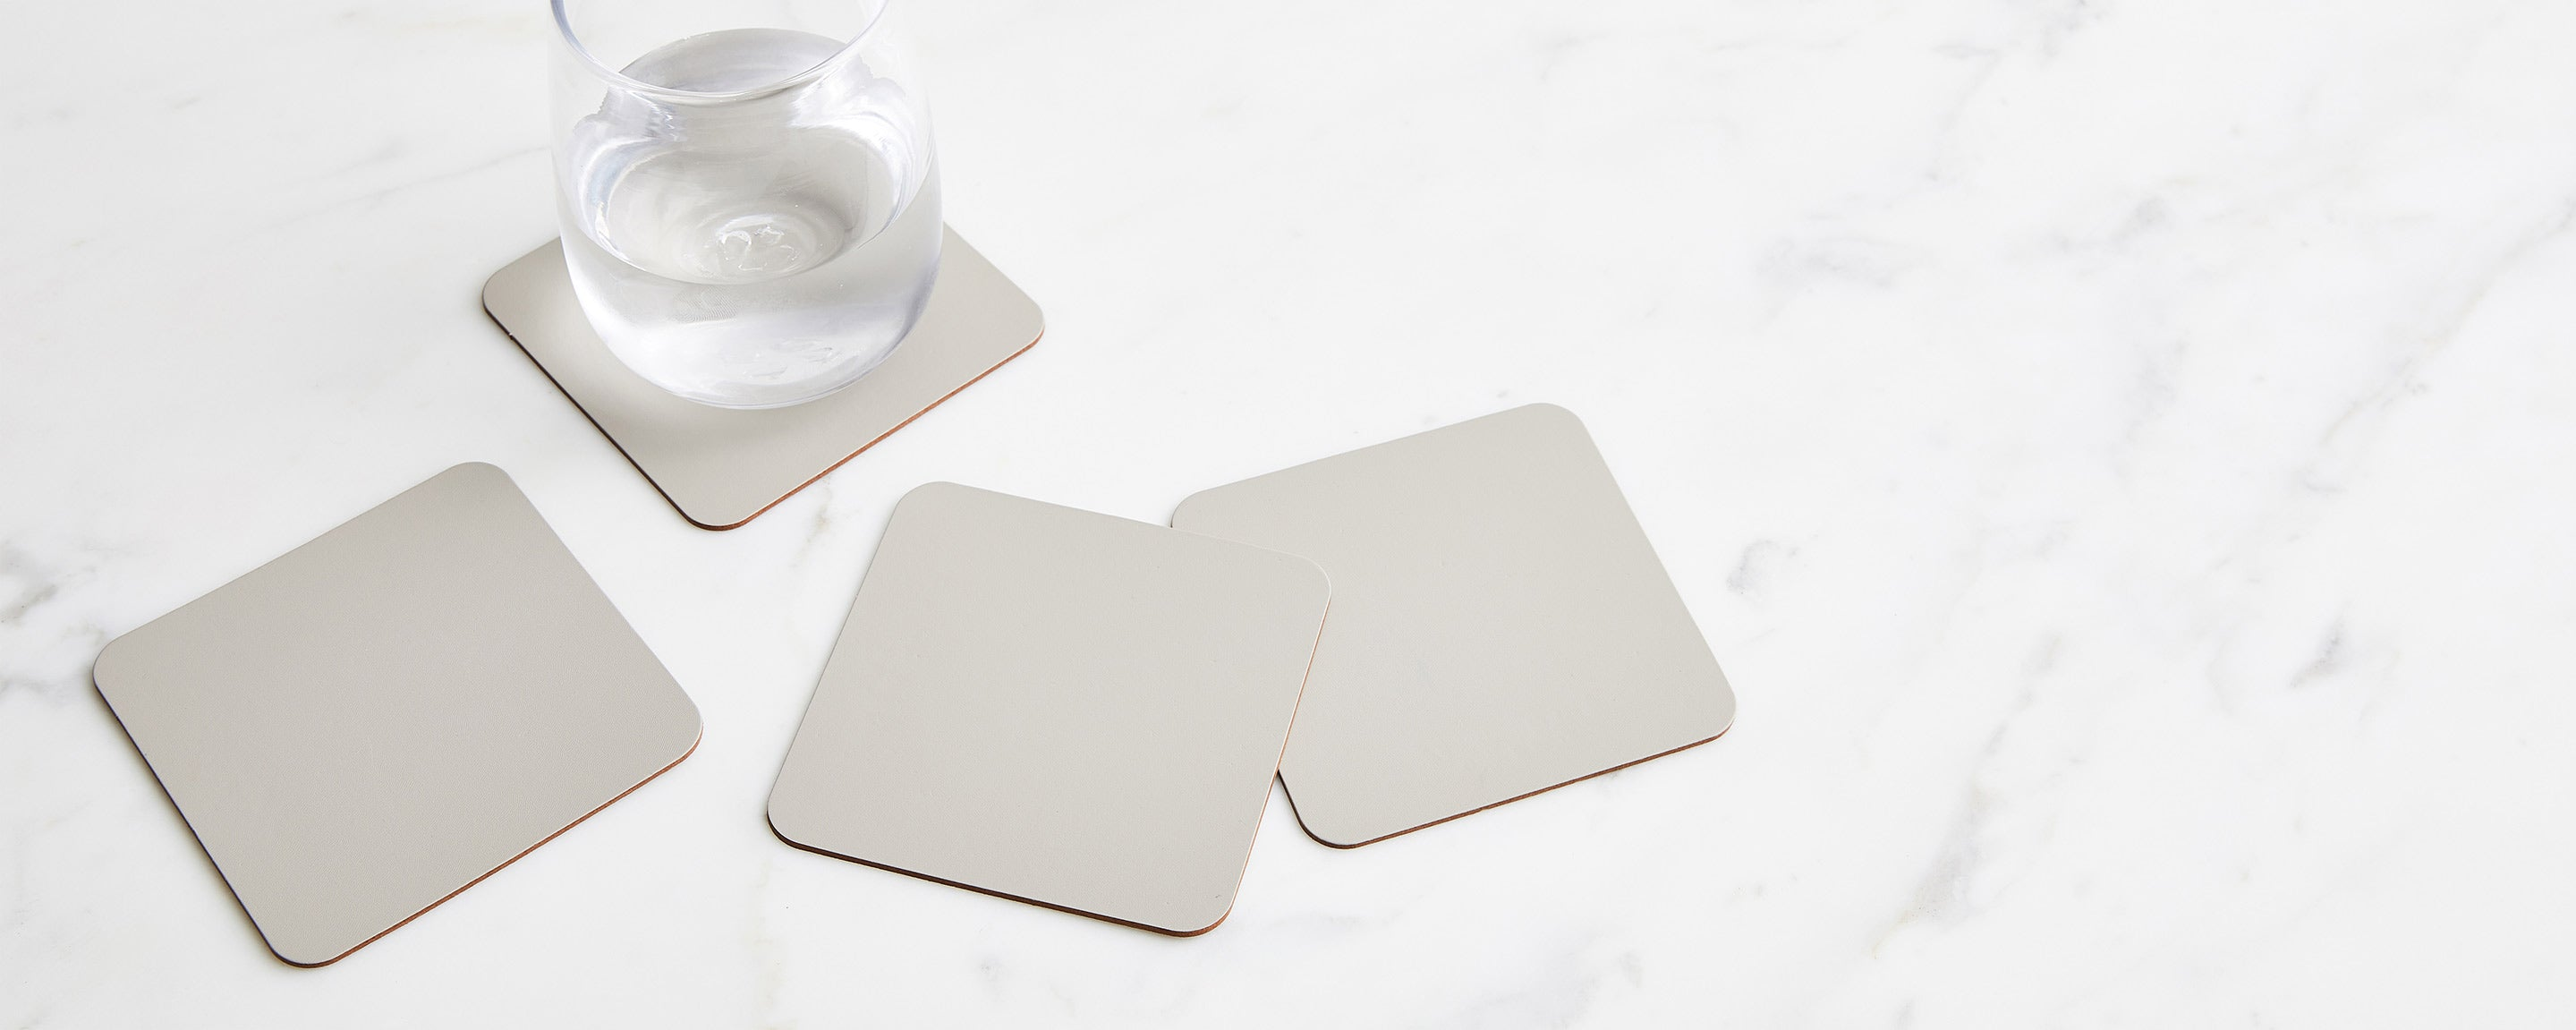 homenature coaster set